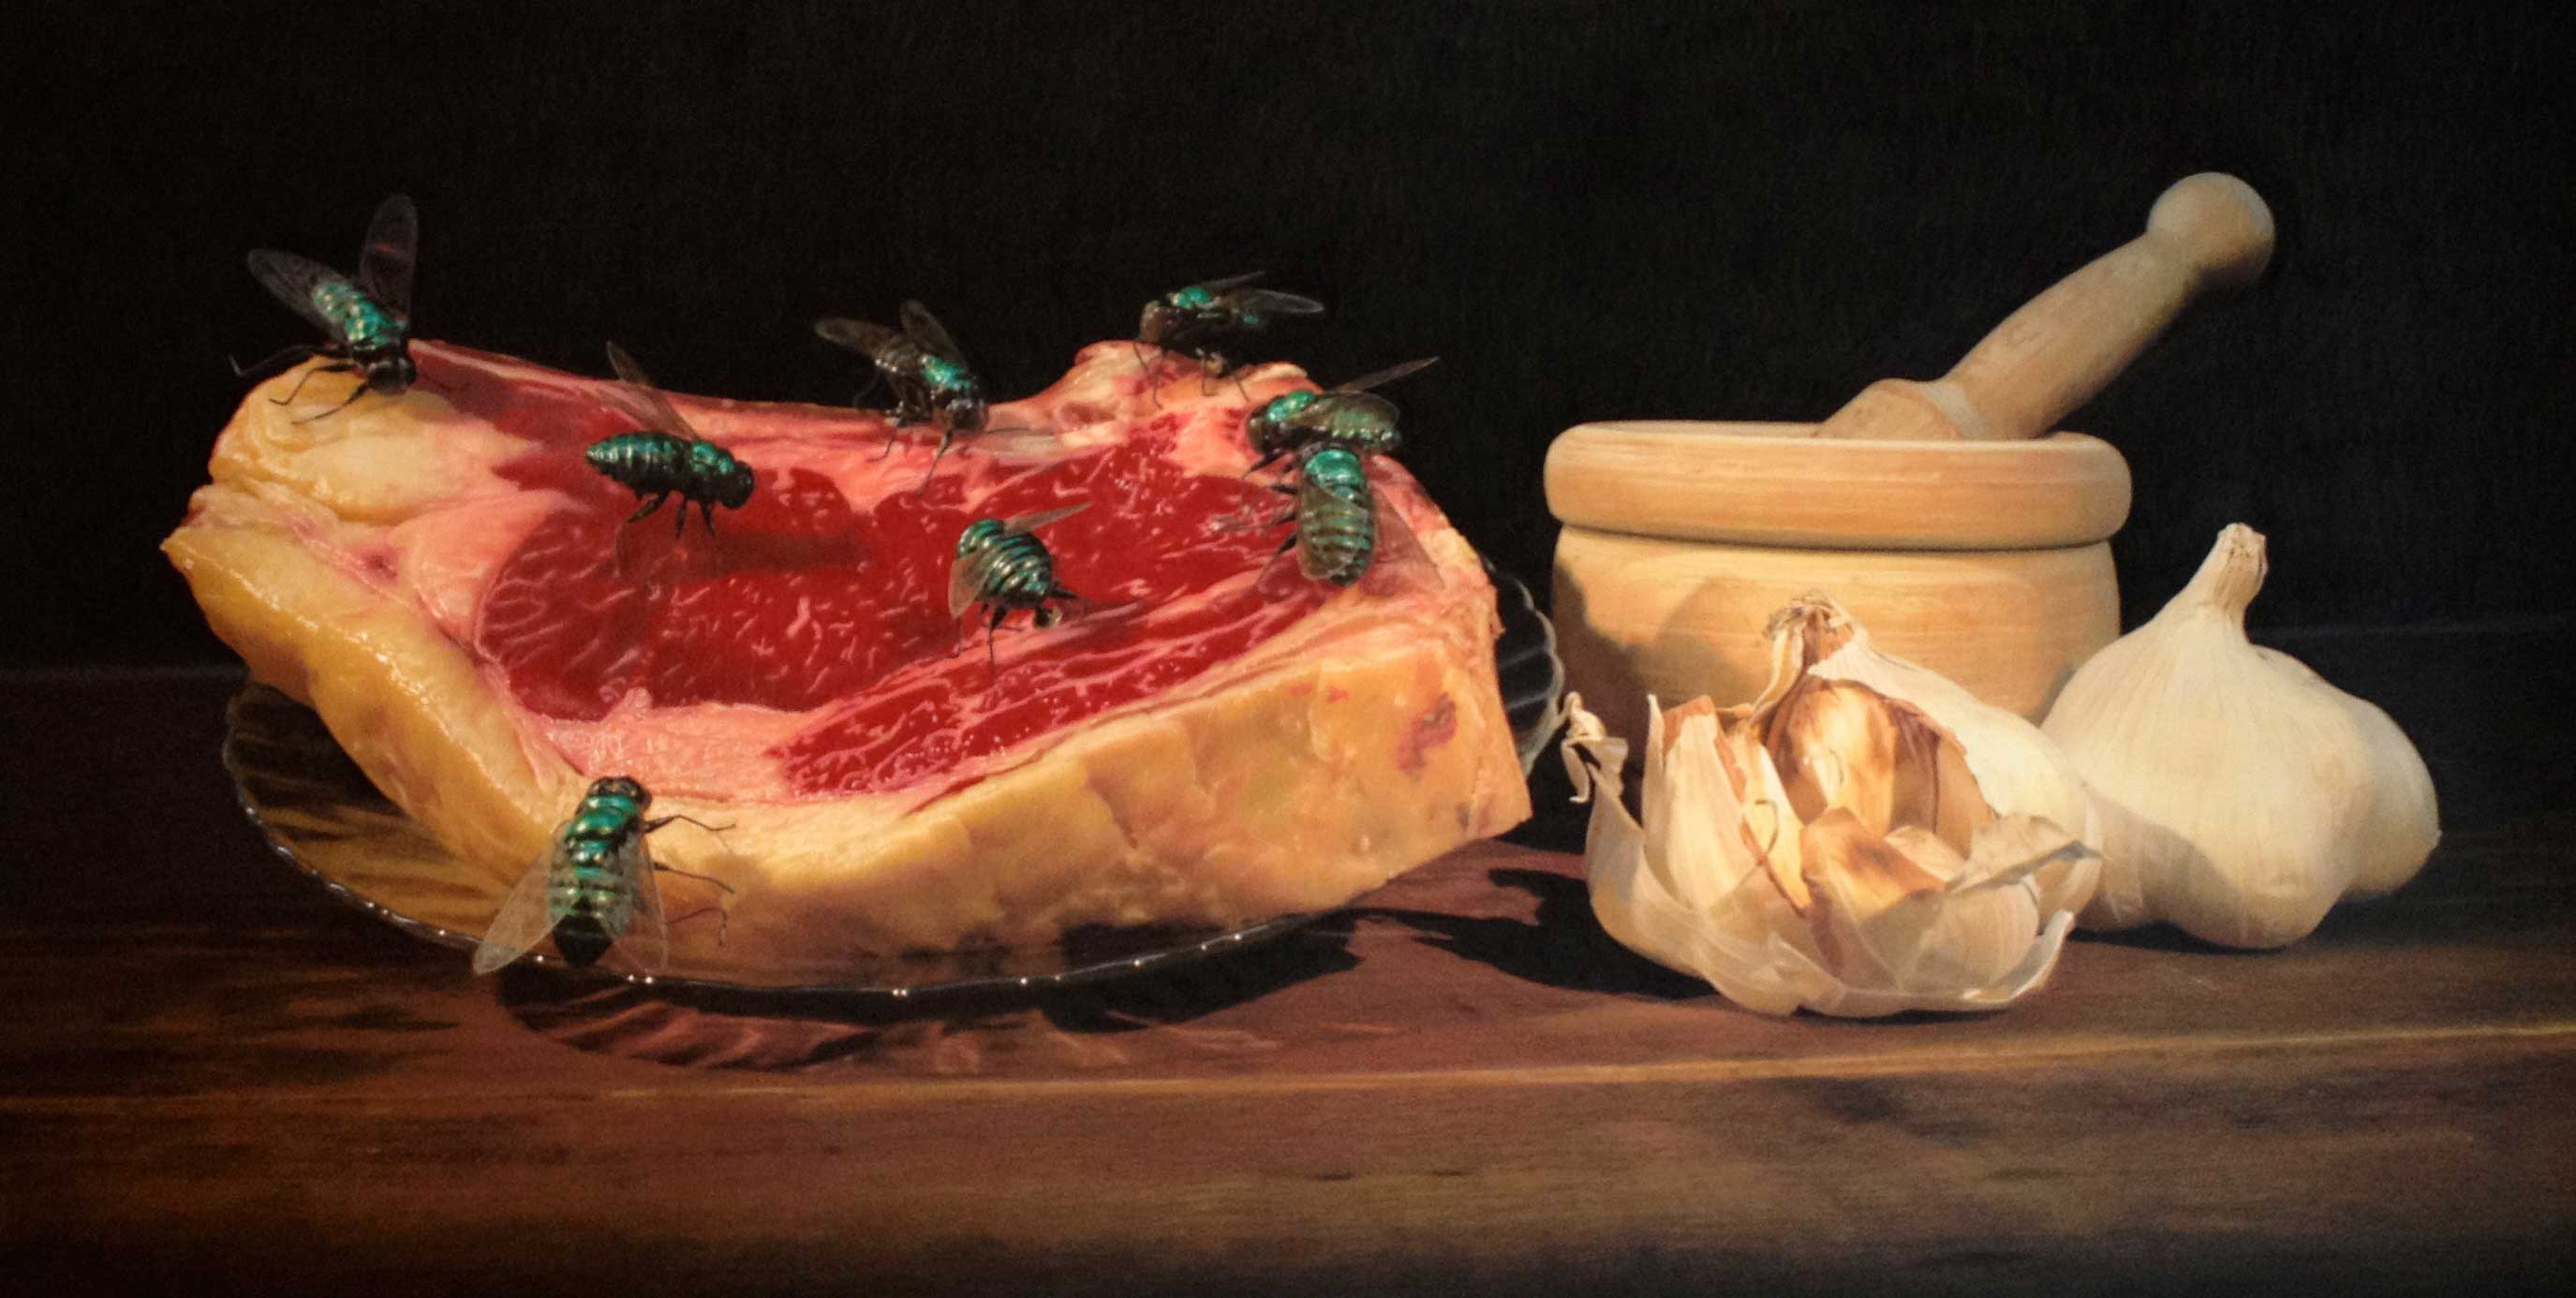 Still life of the Ribeye 2014Drawing 52x98'5cm ©Ana de Alvear